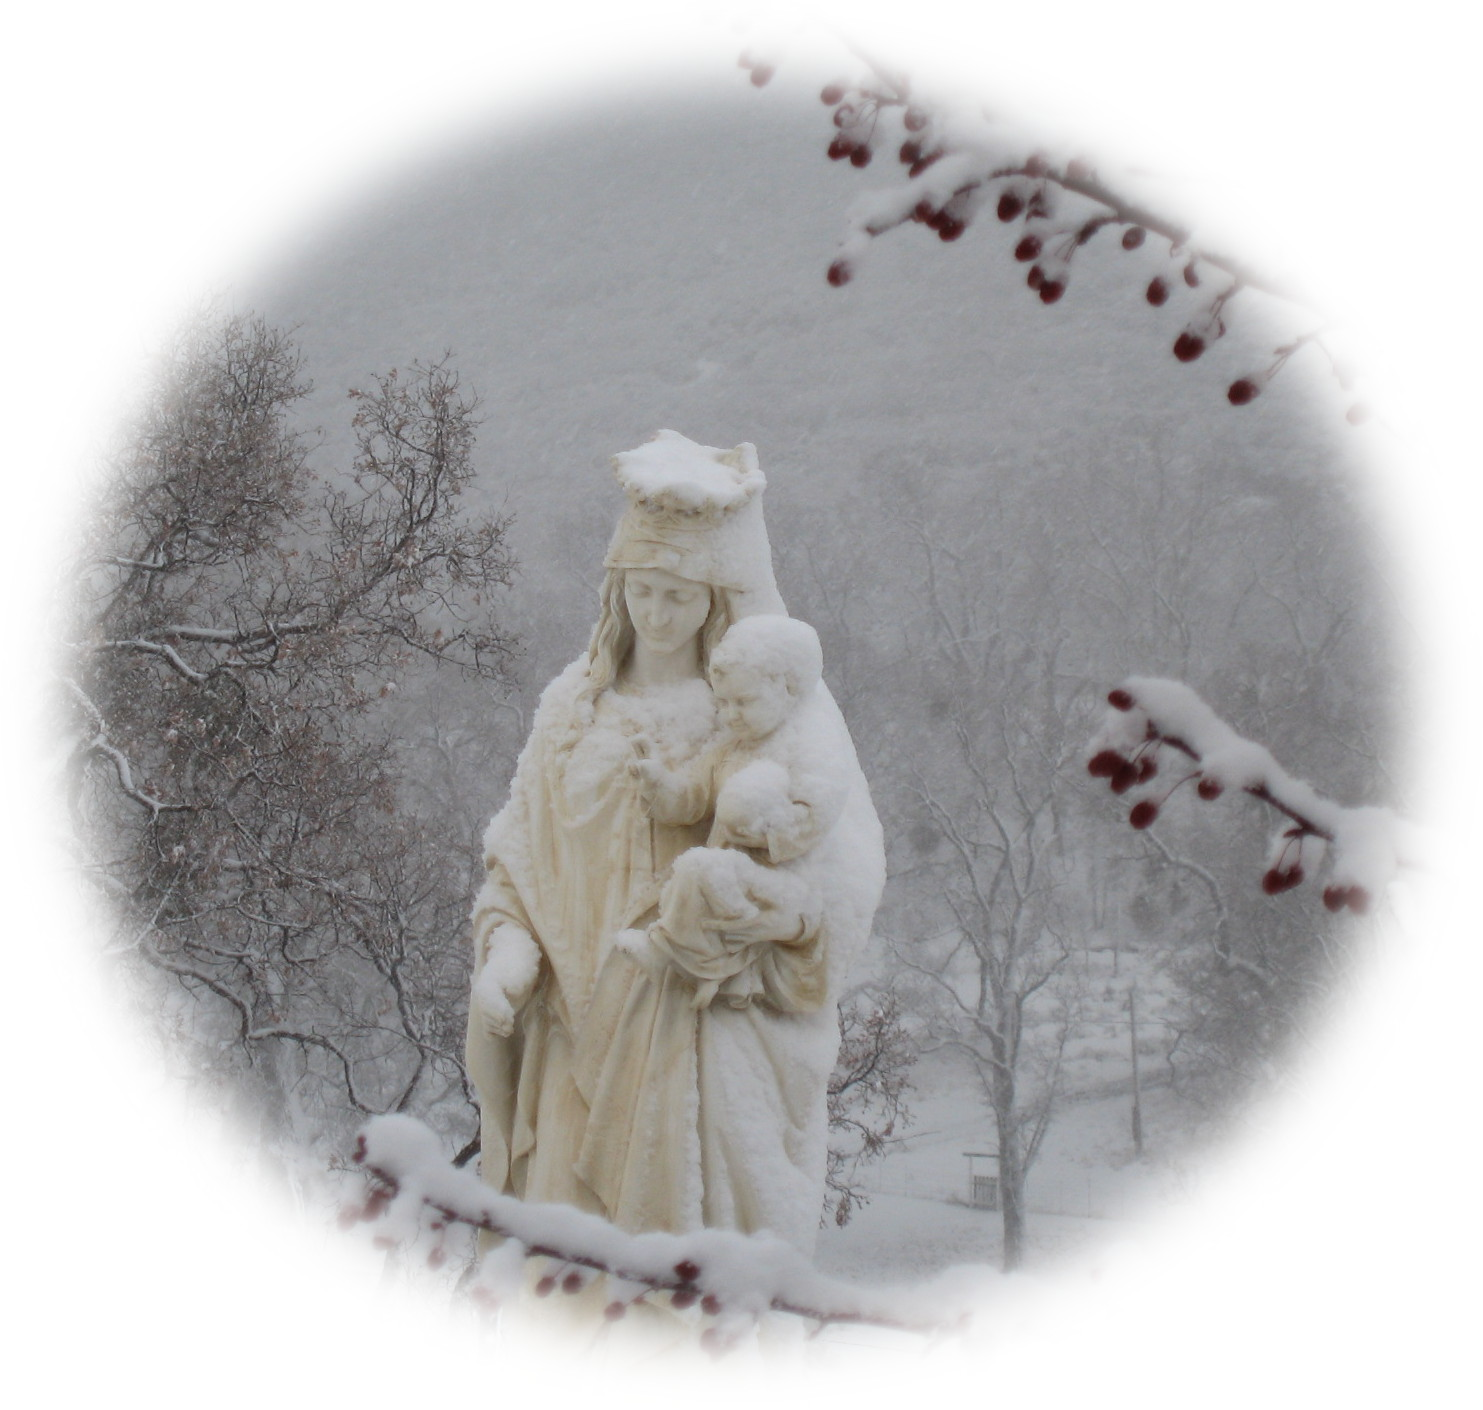 Our Lady in Winter1